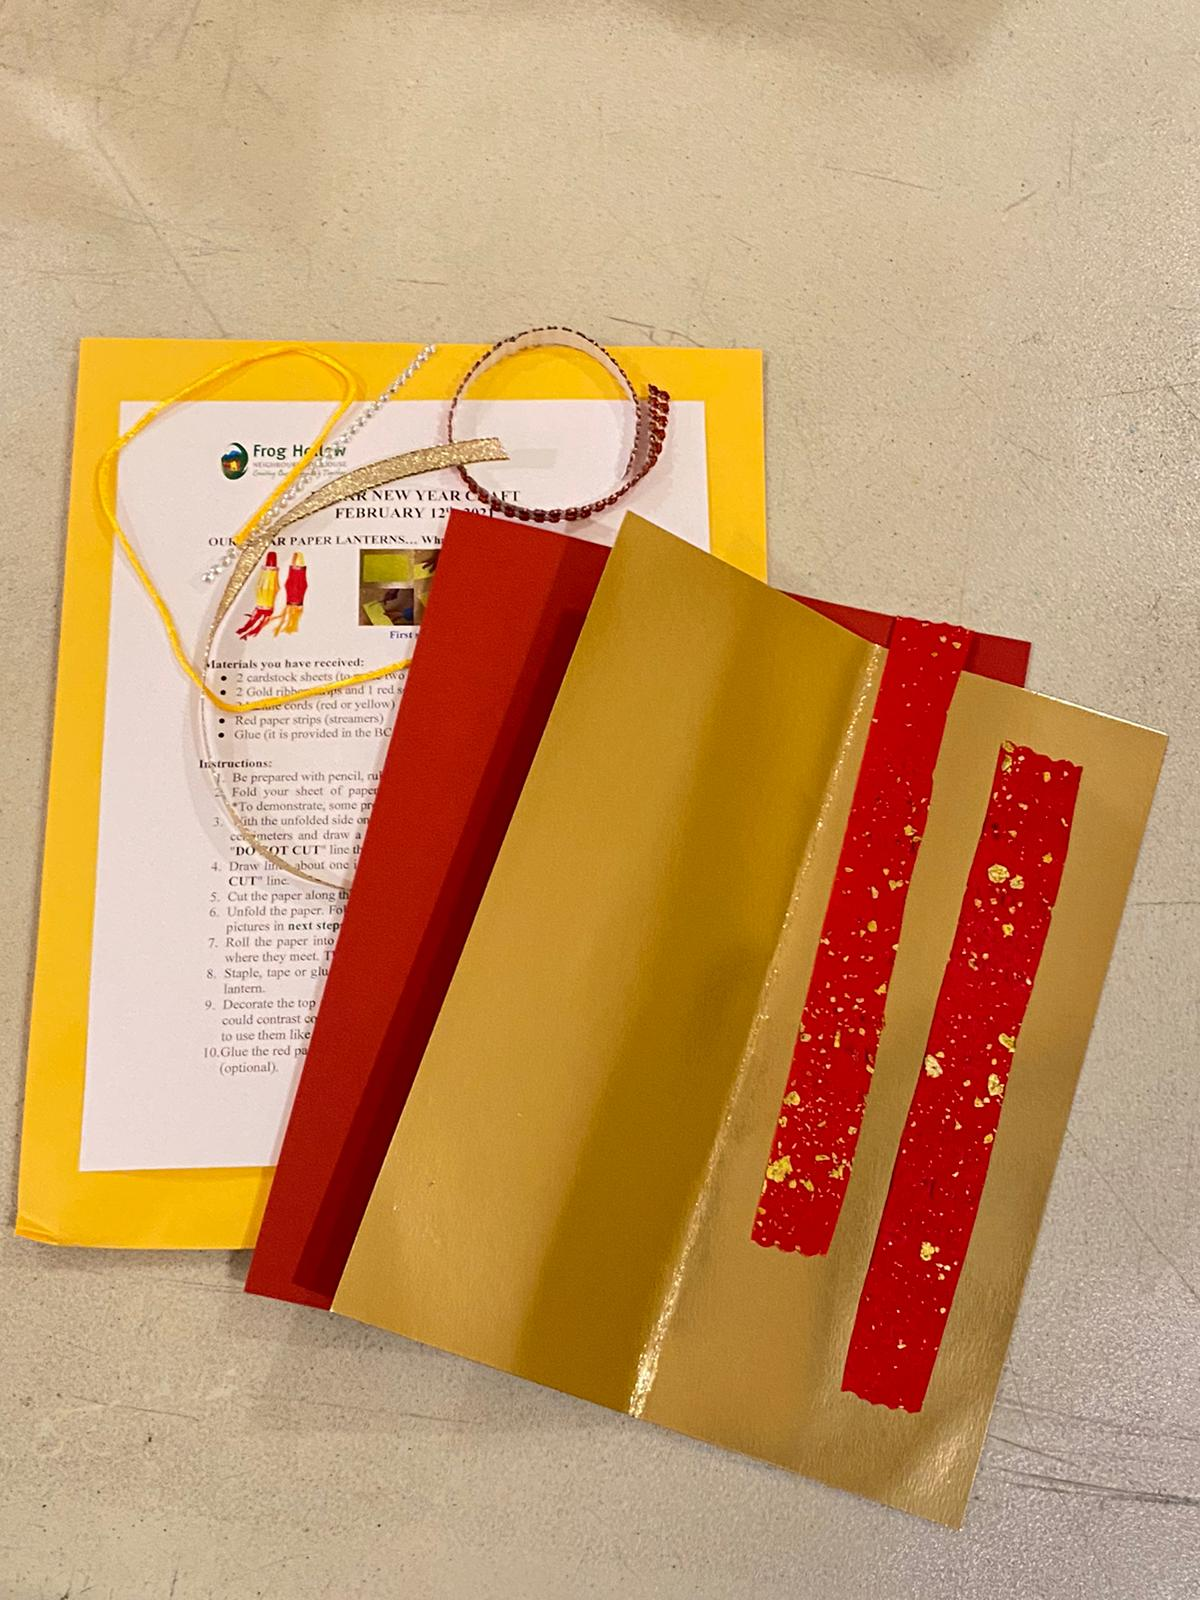 Frog-hollow-Holiday-Celebration-Crafts-Kit- Lunar new year